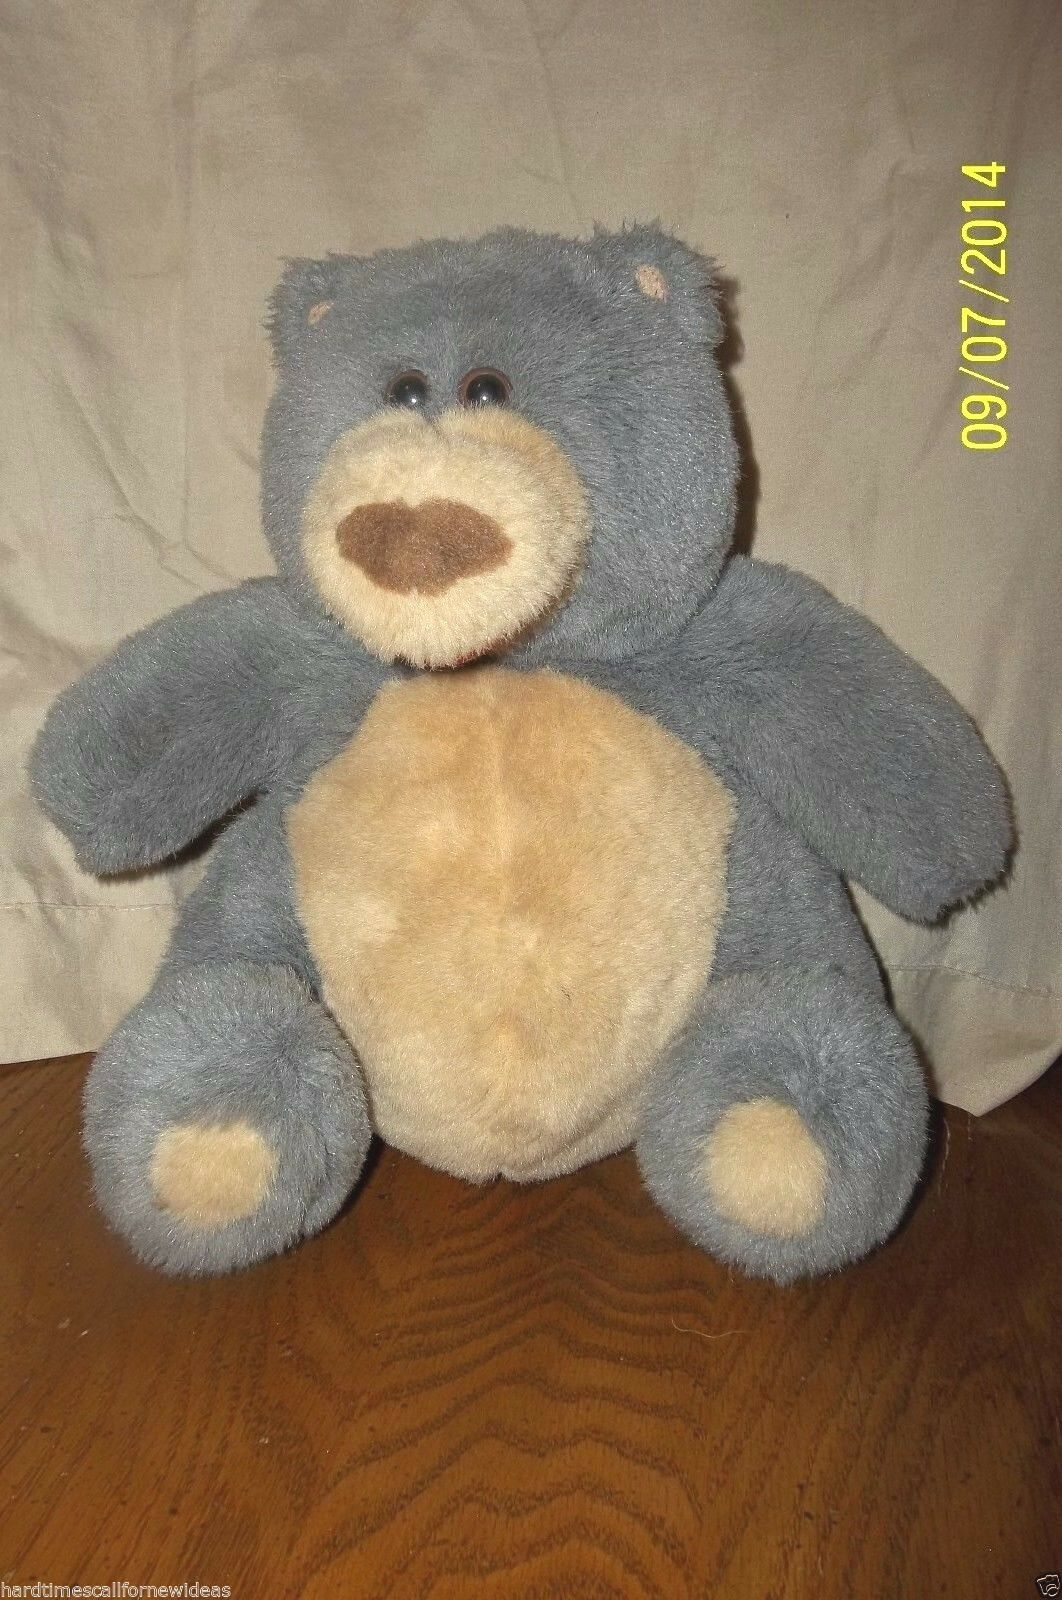 Simple Wishes Bear Plush Talking Sexy Voice Big Kiss Smooch Me Baby W Batteries